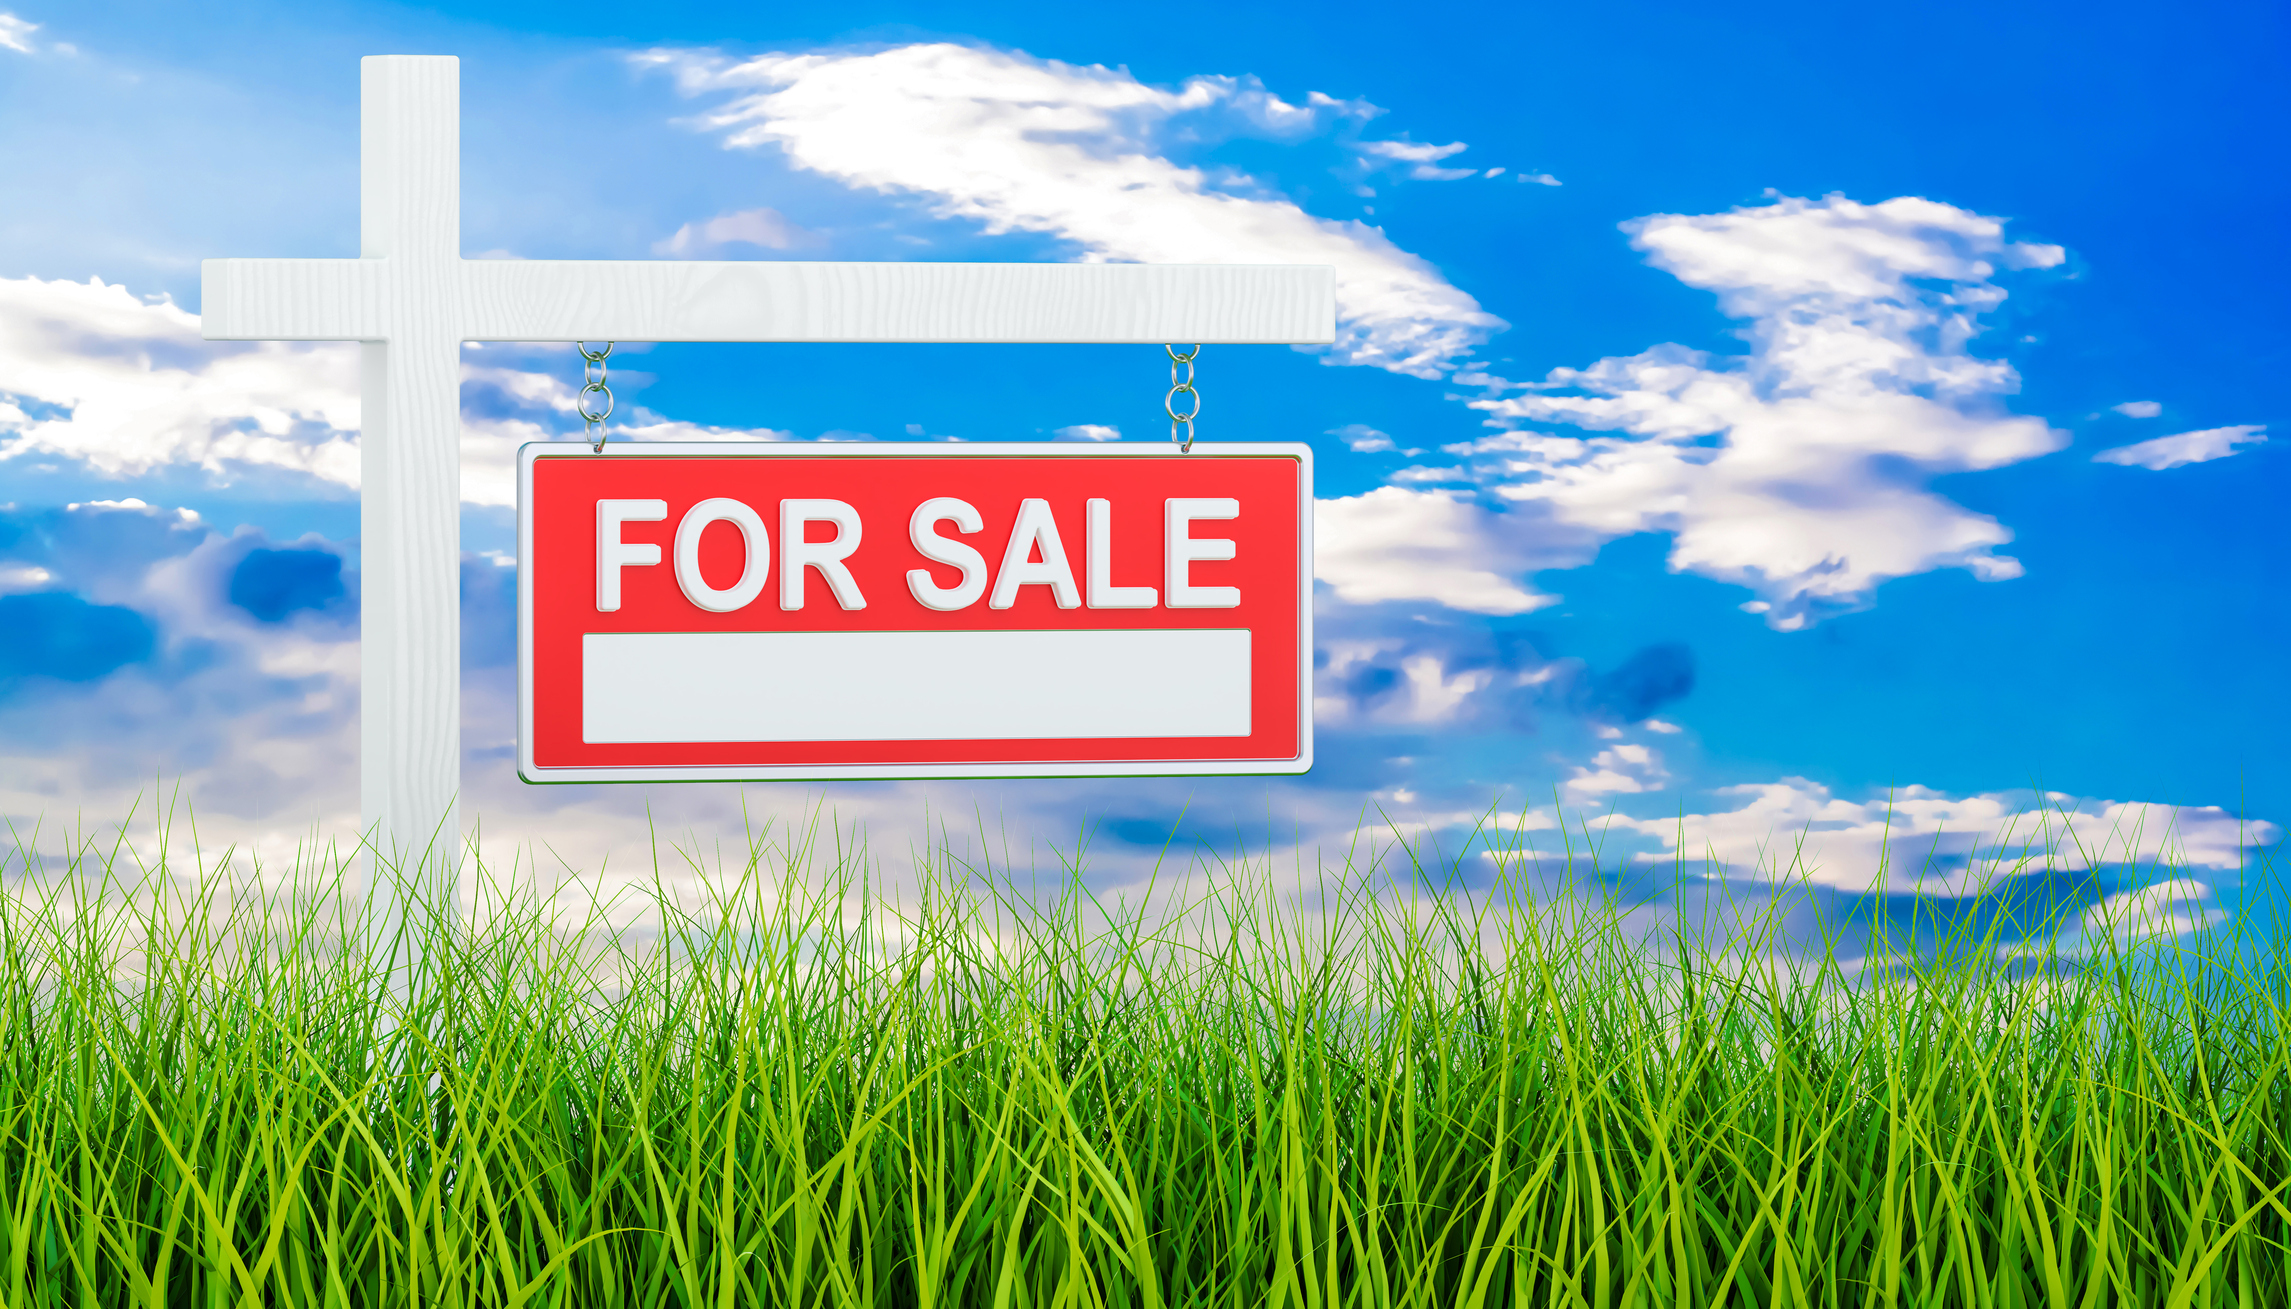 Ready to buy land for YOUR business?